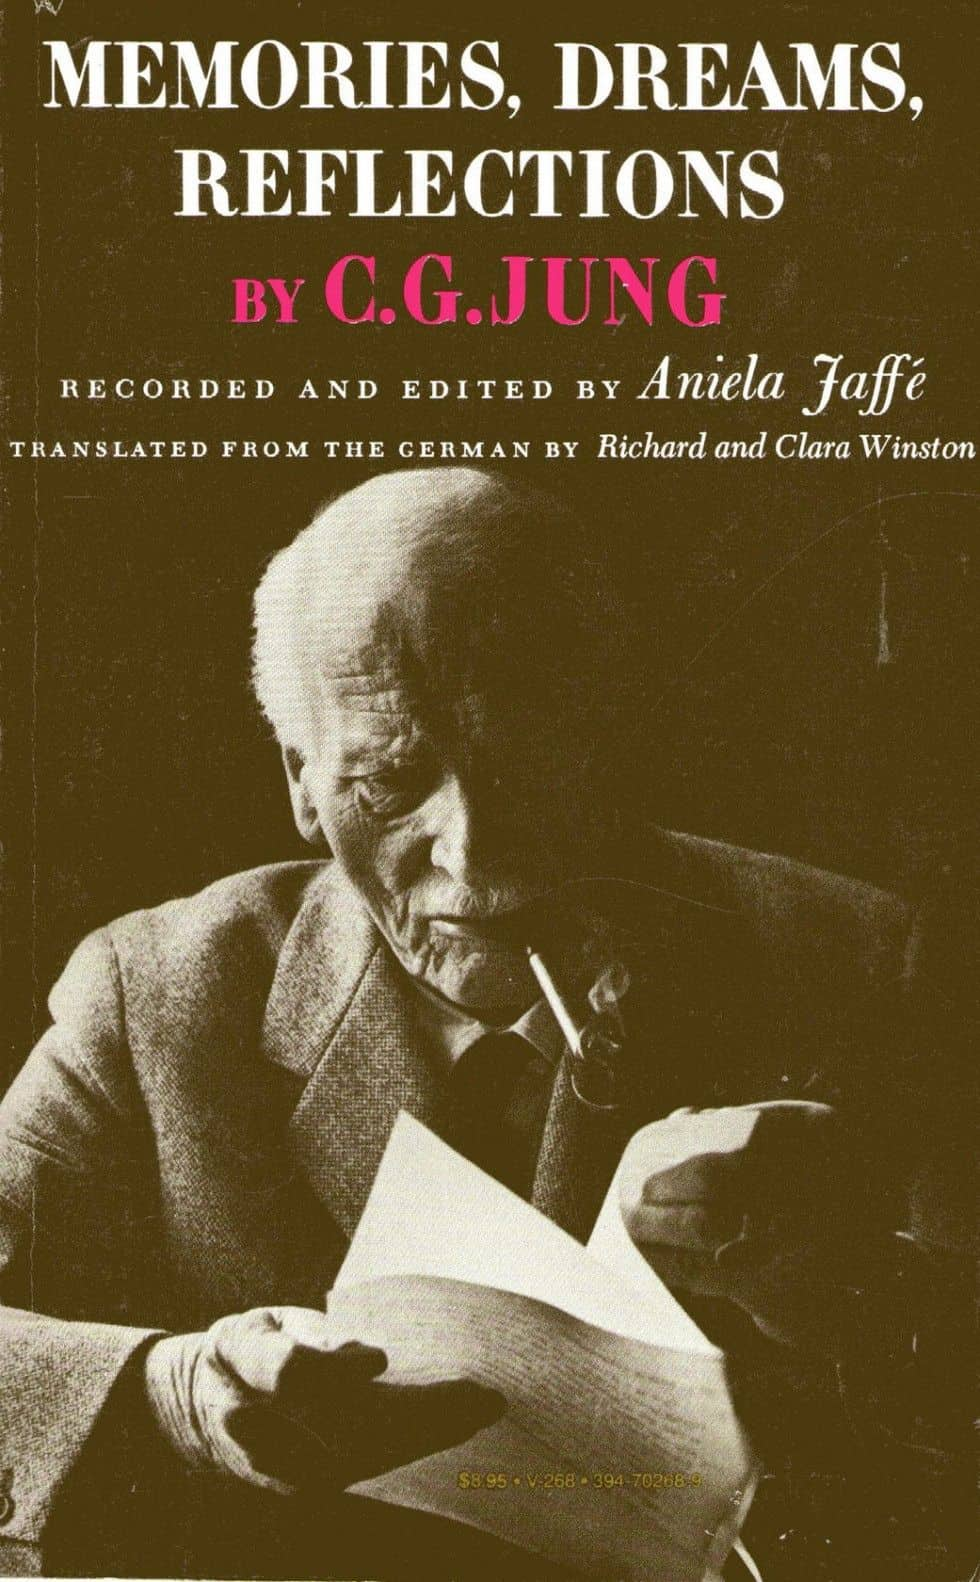 amazon Memories, Dreams, Reflections - Carl Jung reviews Memories, Dreams, Reflections - Carl Jung on amazon newest Memories, Dreams, Reflections - Carl Jung prices of Memories, Dreams, Reflections - Carl Jung Memories, Dreams, Reflections - Carl Jung deals best deals on Memories, Dreams, Reflections - Carl Jung buying a Memories, Dreams, Reflections - Carl Jung lastest Memories, Dreams, Reflections - Carl Jung what is a Memories, Dreams, Reflections - Carl Jung Memories, Dreams, Reflections - Carl Jung at amazon where to buy Memories, Dreams, Reflections - Carl Jung where can i you get a Memories, Dreams, Reflections - Carl Jung online purchase Memories, Dreams, Reflections - Carl Jung sale off discount cheapest Memories, Dreams, Reflections - Carl Jung  Memories, Dreams, Reflections - Carl Jung for sale a general introduction to psychoanalysis book american board and academy of psychoanalysis book prize the publication of the book entitled in 1895 is regarded as the formal beginning of psychoanalysis book about psychoanalysis psychoanalysis and neuroscience book psychoanalysis art book best book about psychoanalysis introduction to psychoanalysis audiobook the how-to book for students of psychoanalysis and psychotherapy psychoanalysis in a new key book series best psychoanalysis book the black book of psychoanalysis the black book of psychoanalysis pdf best book to learn psychoanalysis best book on history of psychoanalysis the black book of psychoanalysis by catherine meyer book on psychoanalysis by freud sigmund freud ebook psychoanalysis contributions to psychoanalysis book psychoanalysis comic book on the couch a book of psychoanalysis cartoons new yorker psychoanalysis cartoon book psychoanalysis book definition the seminar of jacques lacan book vii the ethics of psychoanalysis pdf the seminar of jacques lacan book vii the ethics of psychoanalysis psychoanalysis and education book freud psychoanalysis book pdf freud psychoanalysis book best book for psychoana